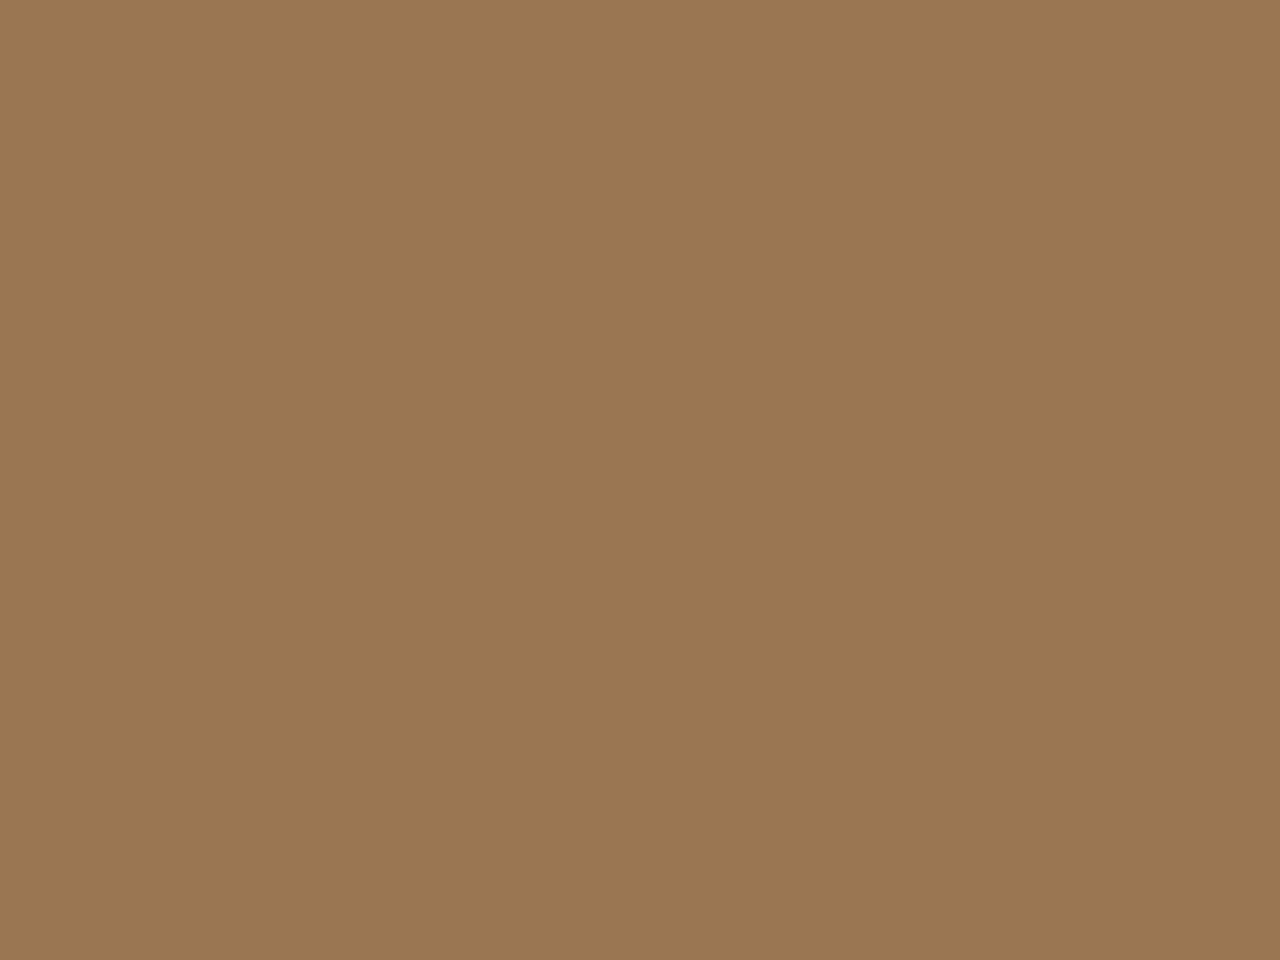 1280x960 Dirt Solid Color Background